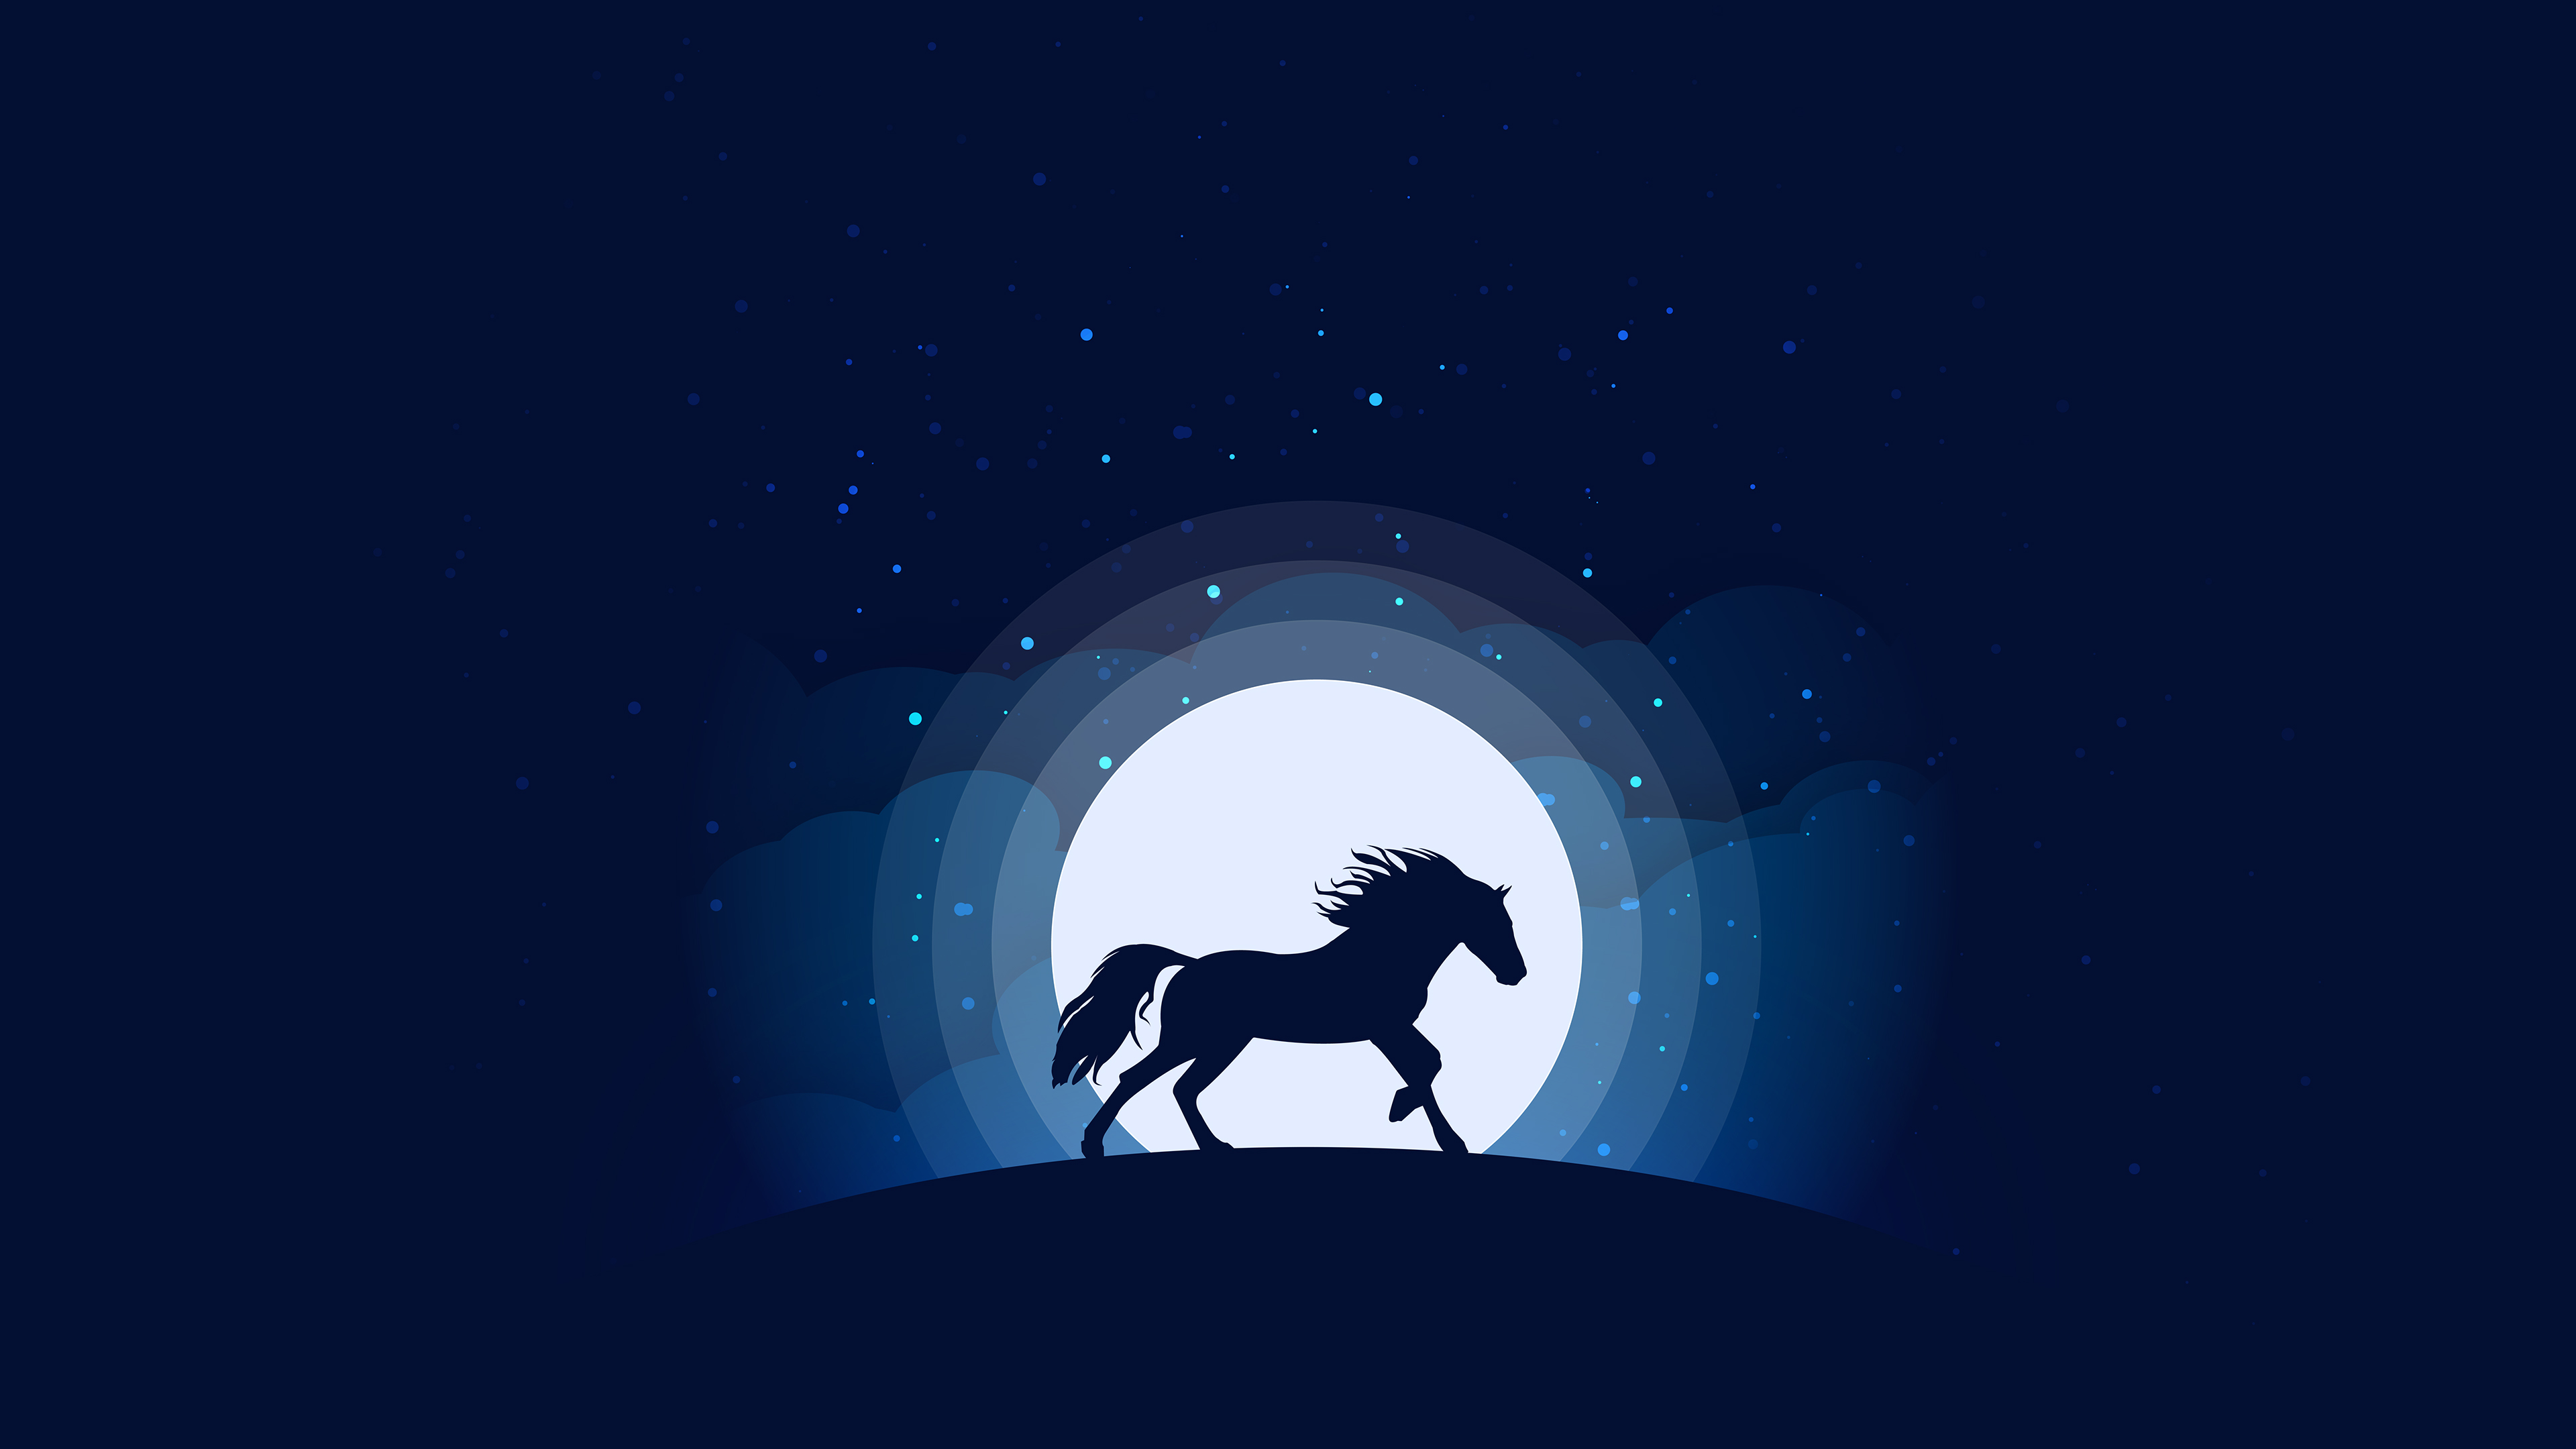 Horse Silhouette Digital Art Hd Animals 4k Wallpapers Images Backgrounds Photos And Pictures